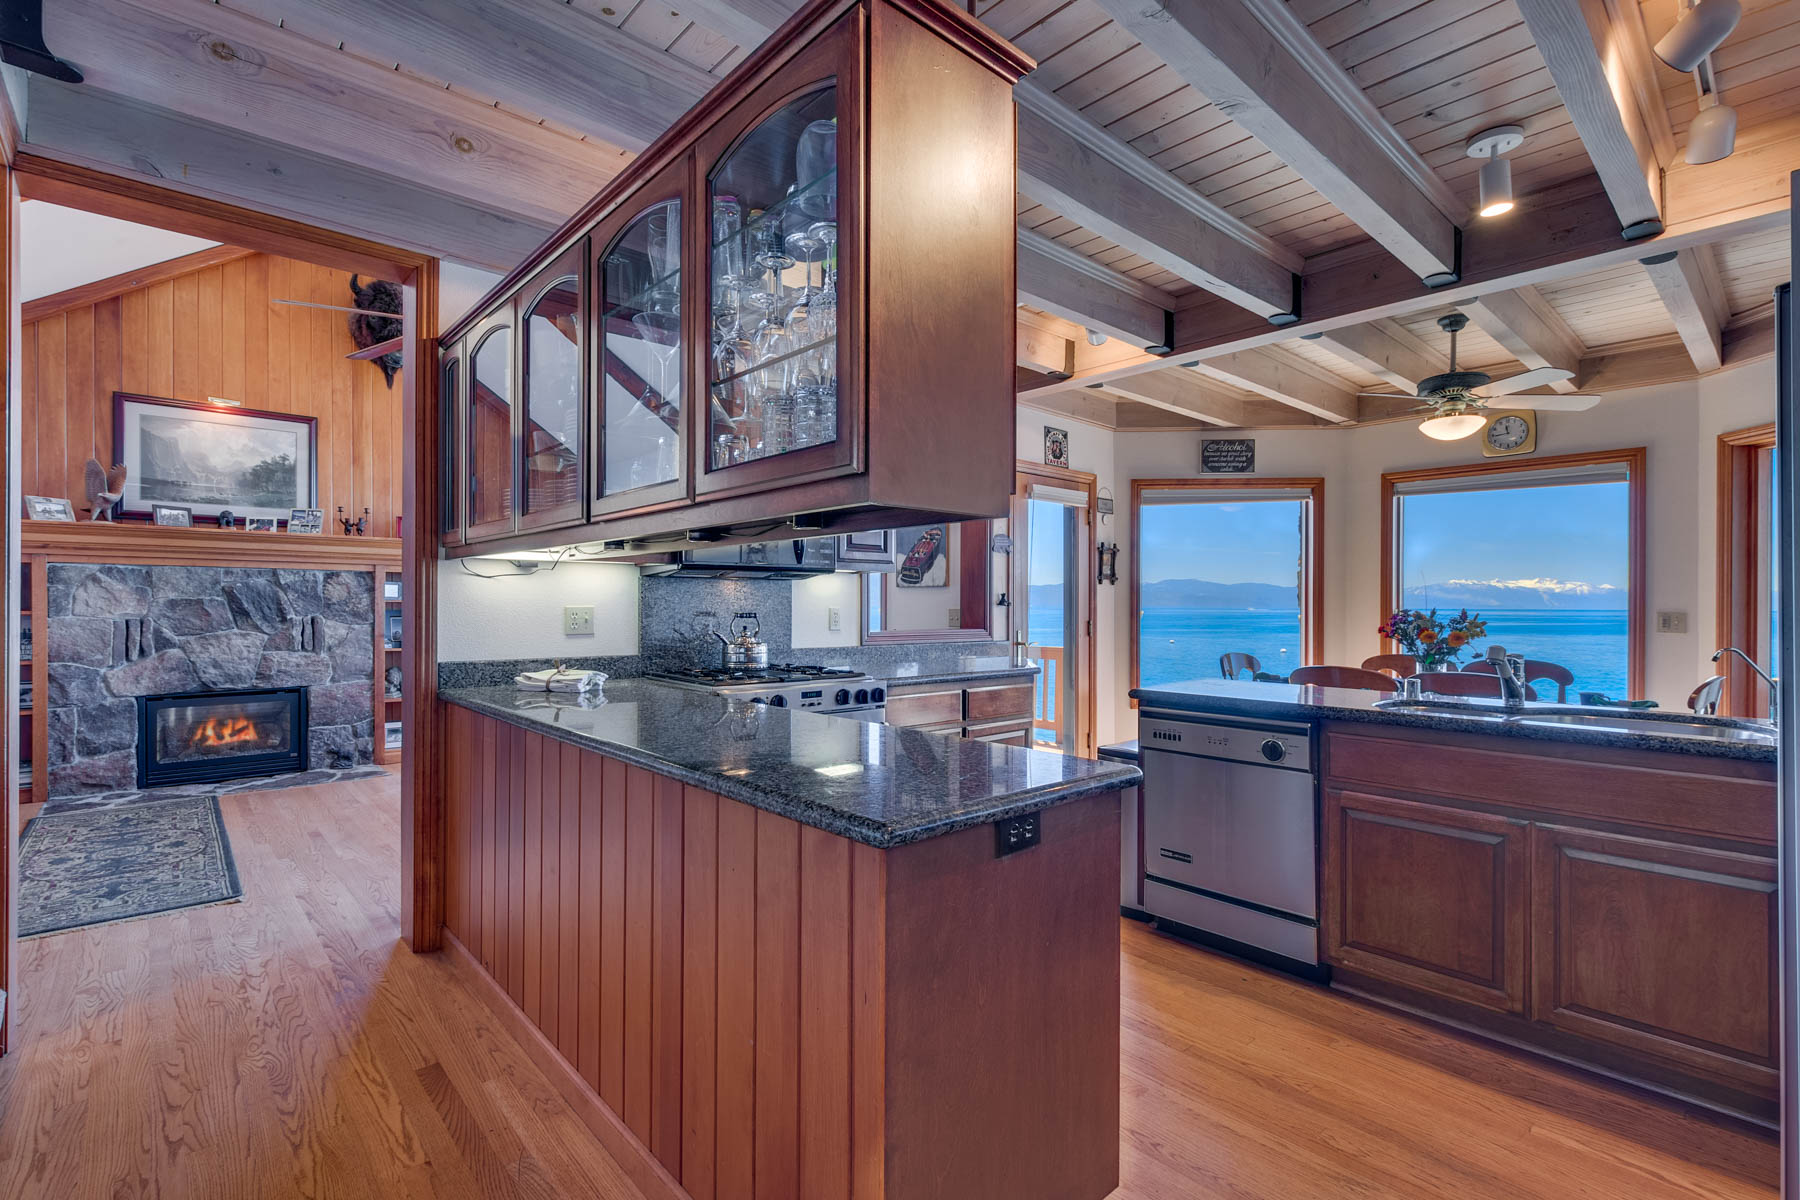 Additional photo for property listing at 6100 N Lake Blvd., Tahoe Vista, CA 6100 N Lake Blvd. Tahoe Vista, California 96148 Estados Unidos